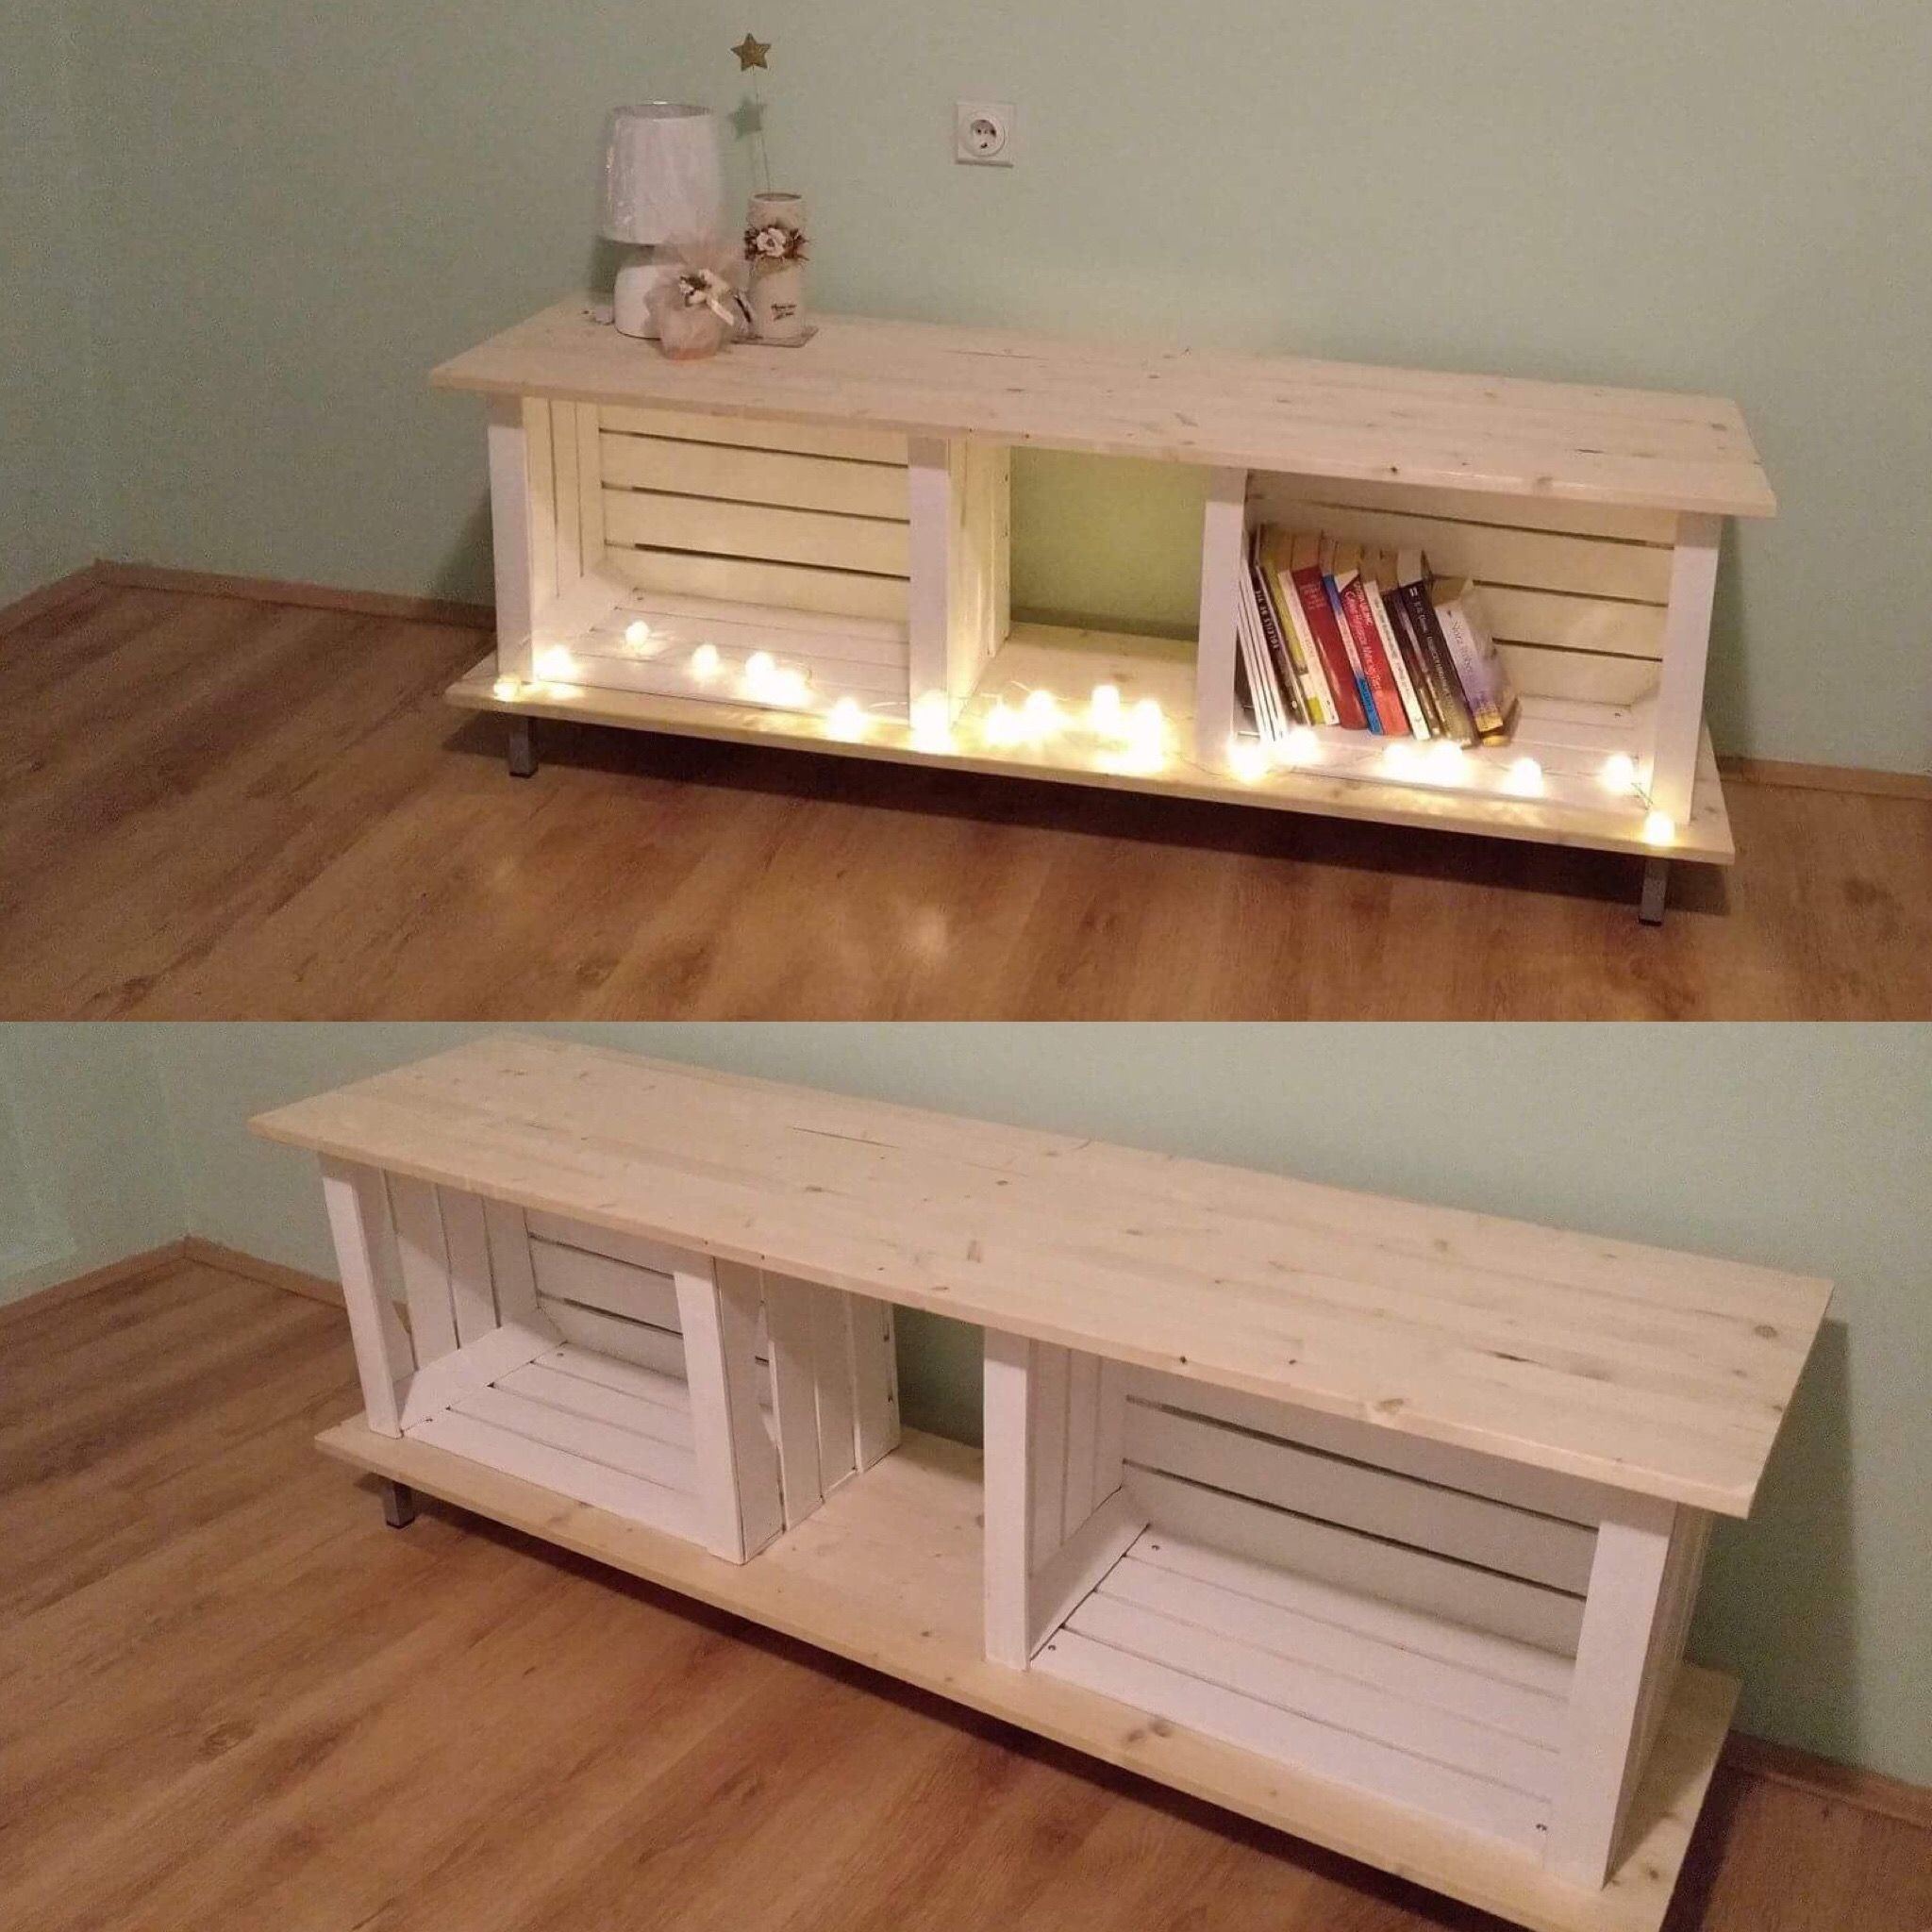 Our First Diy Project Wooden Crates Pinterest Inspired Tv Stand  # Meuble Tv En Bois Simple Et Leur Plan